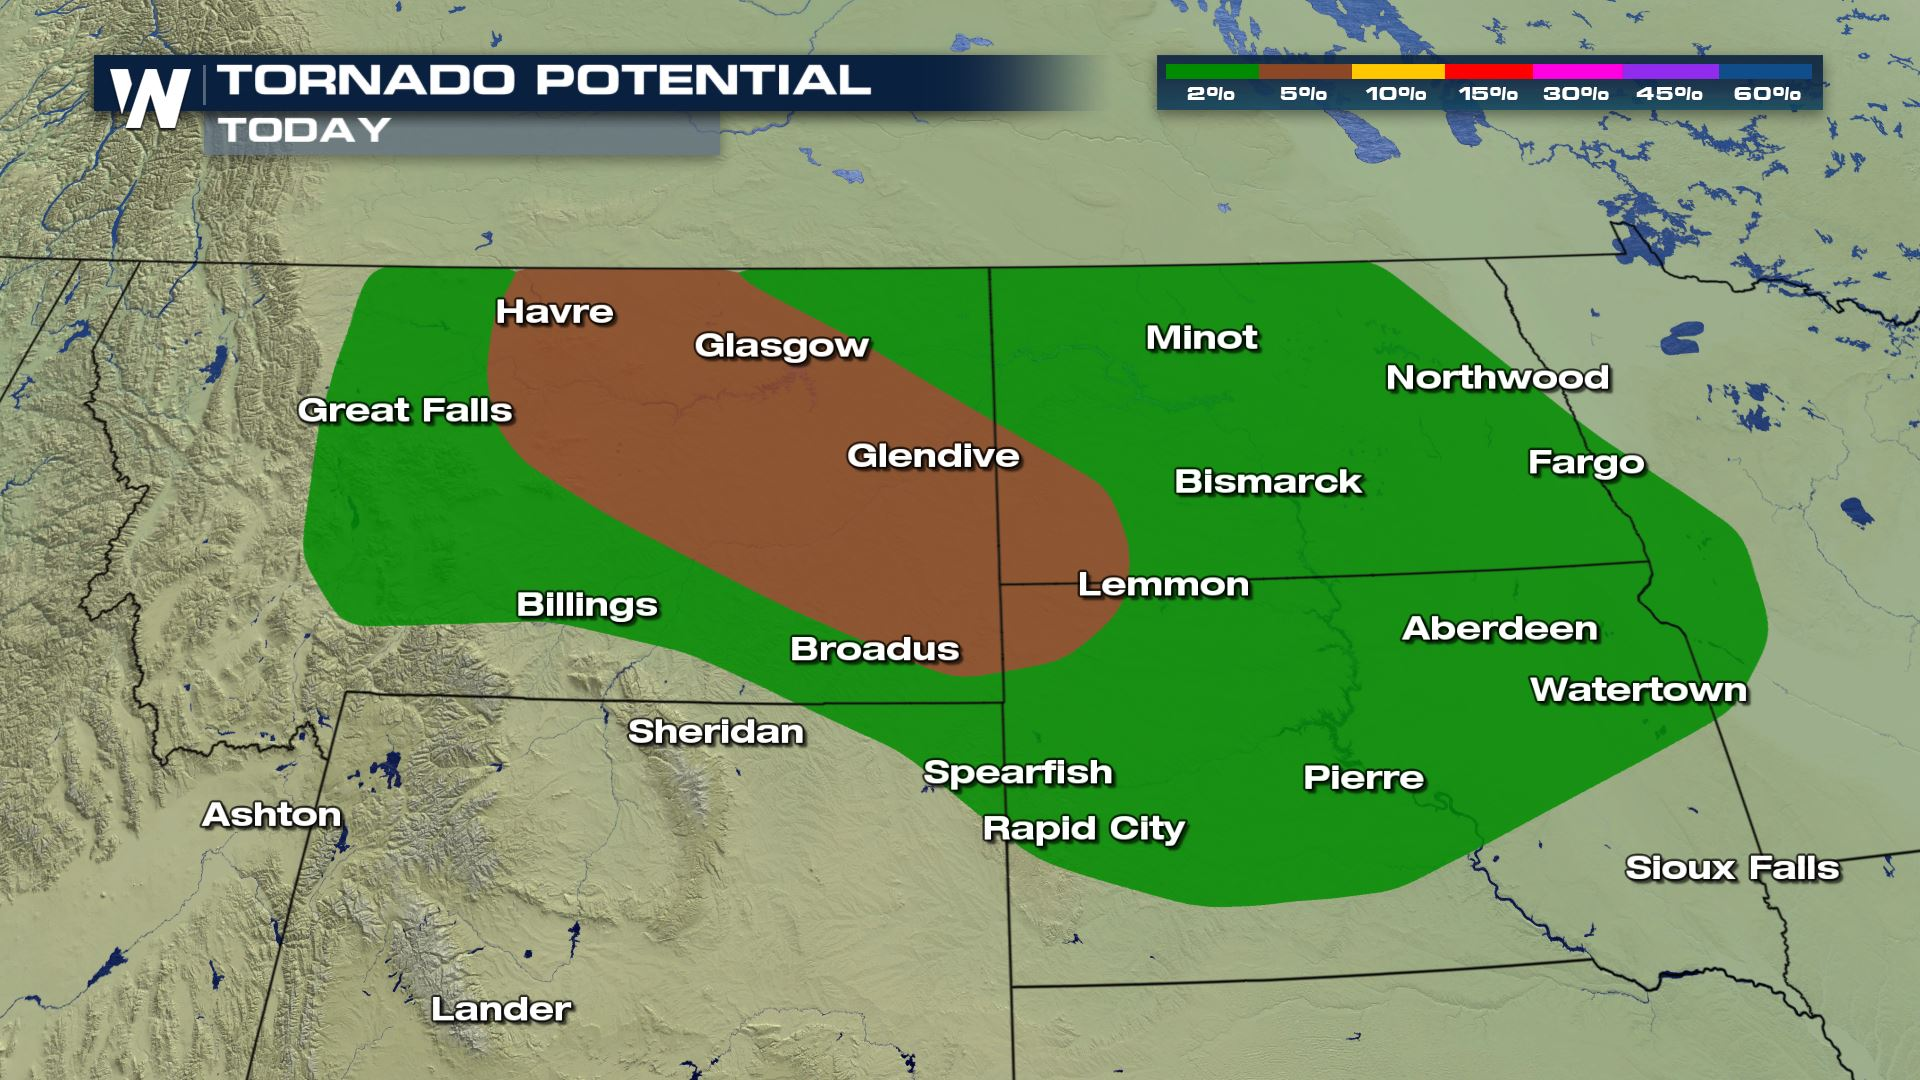 Large Hail and Tornado Risk for the Northern Plains Tuesday